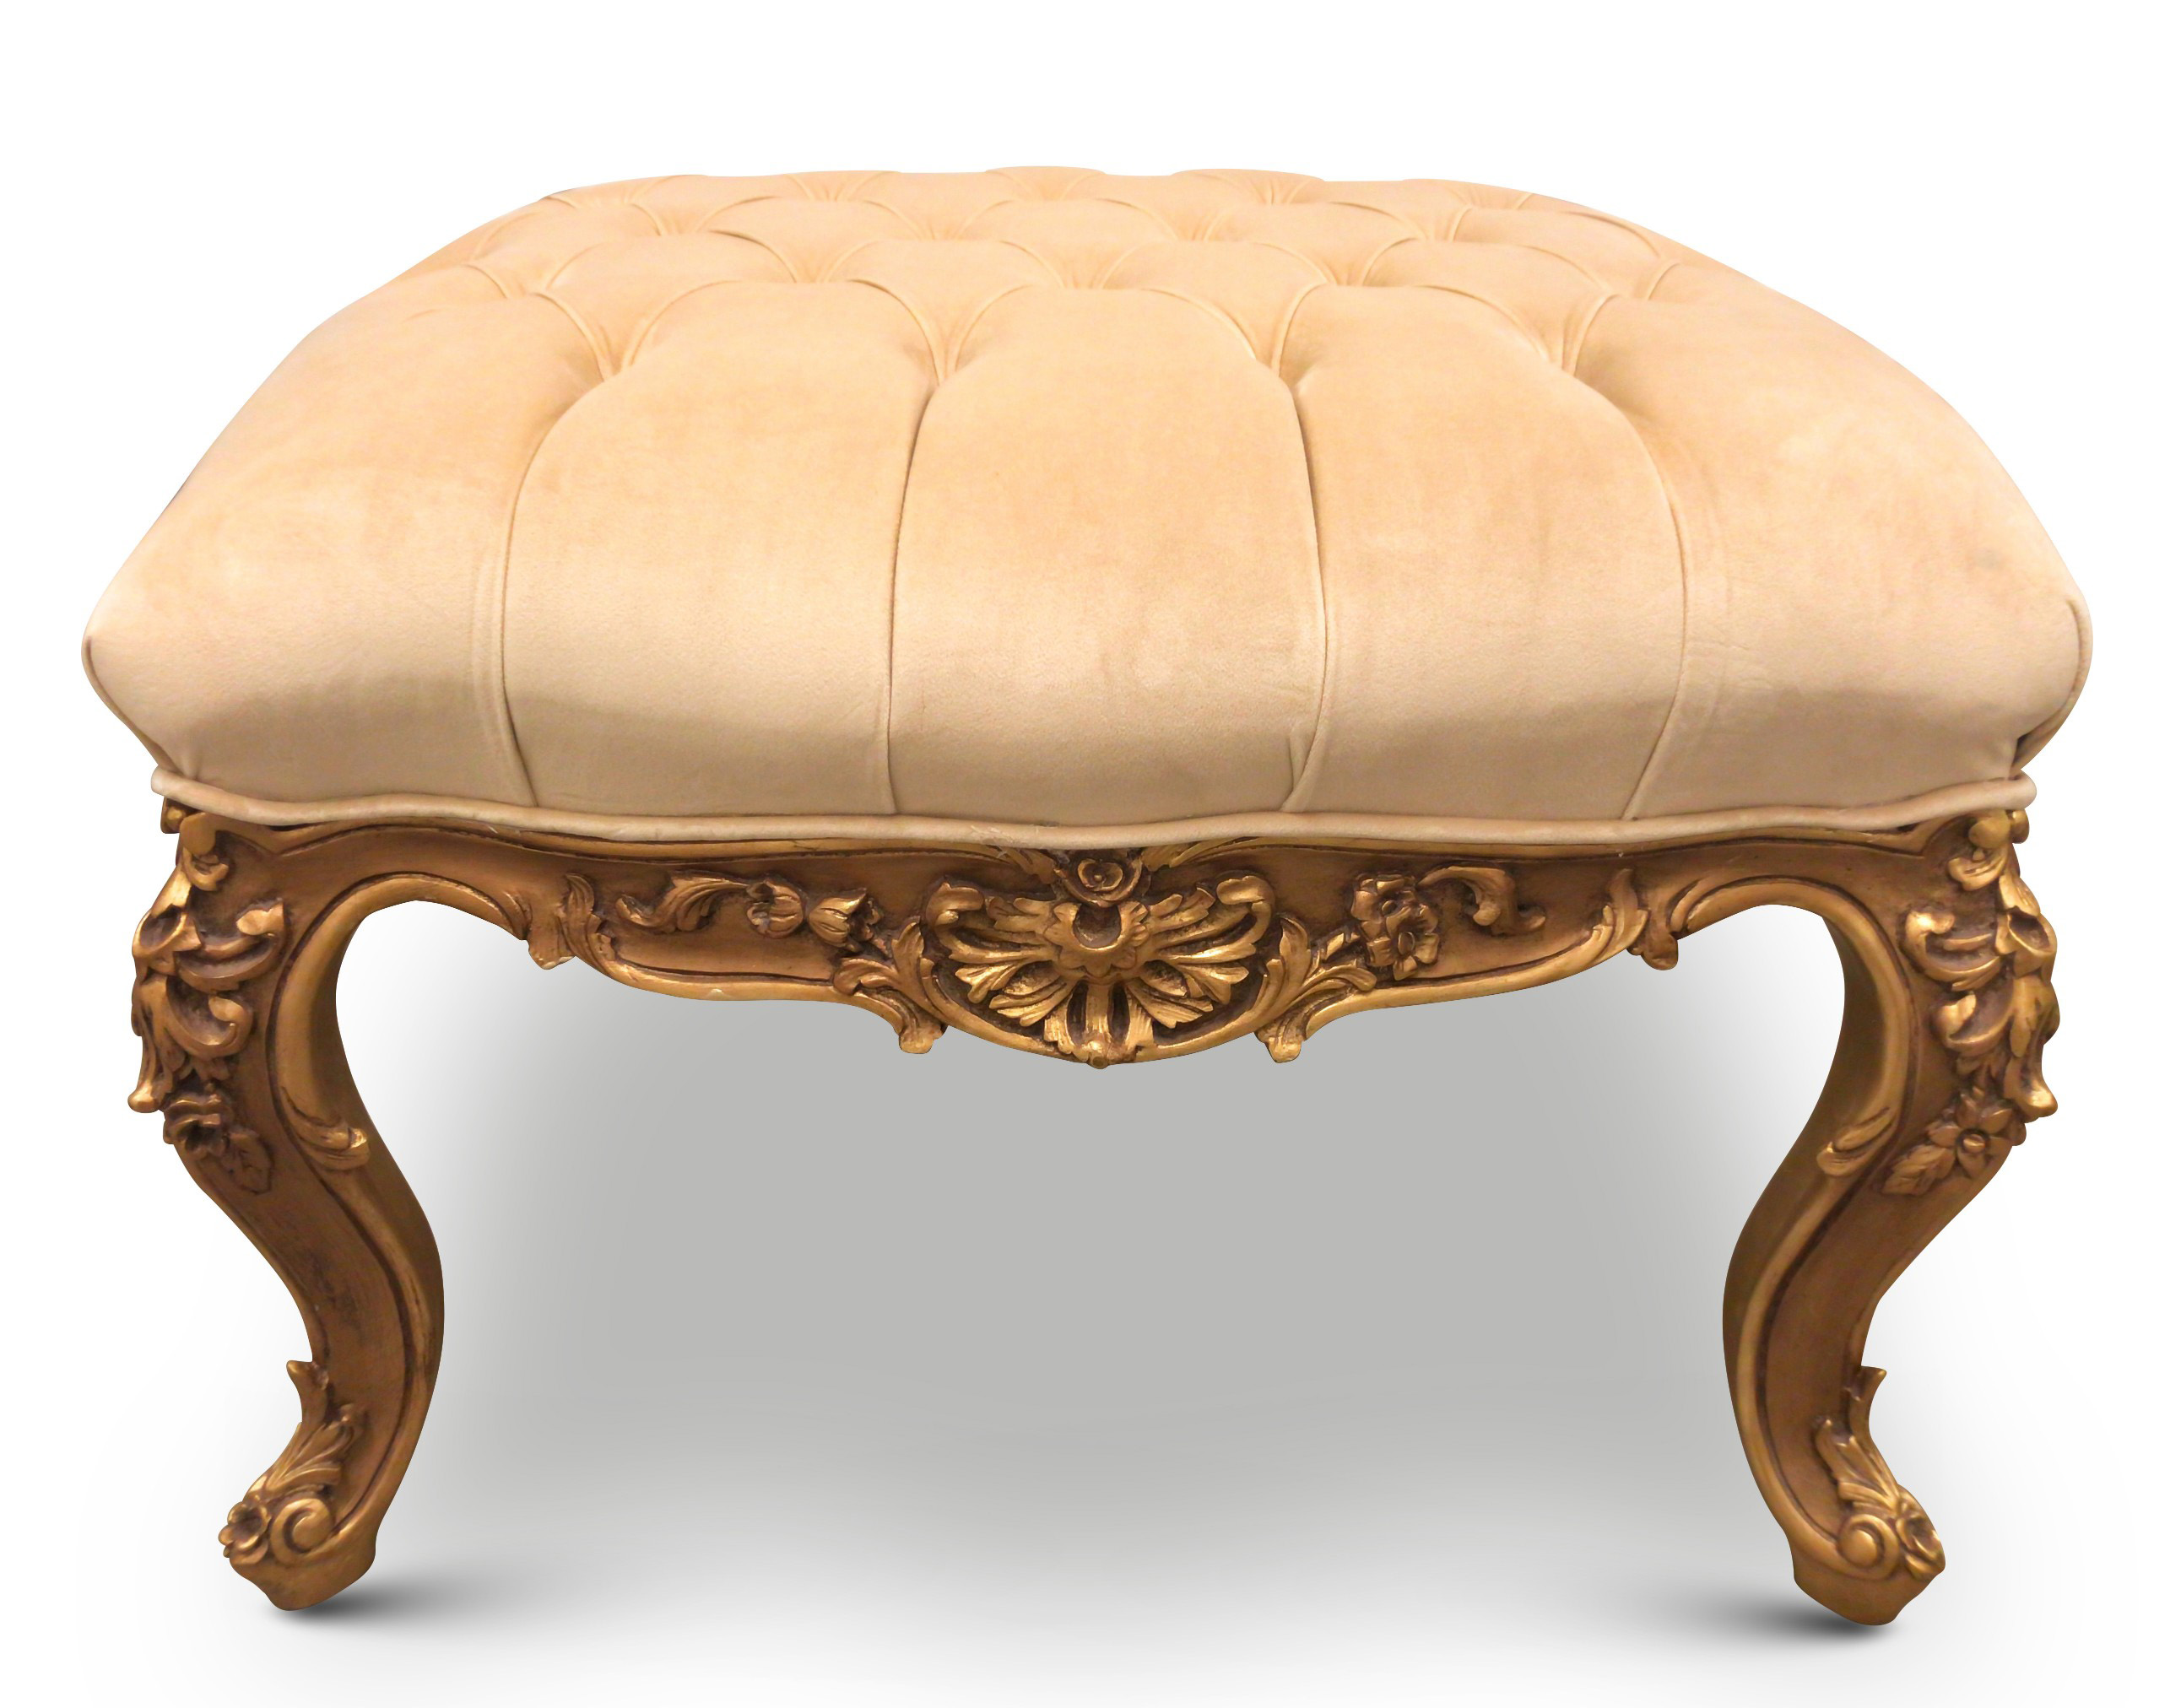 Circé, French Style, Gold Leaf ,Tufted Cream Biege Velvet , Ottoman